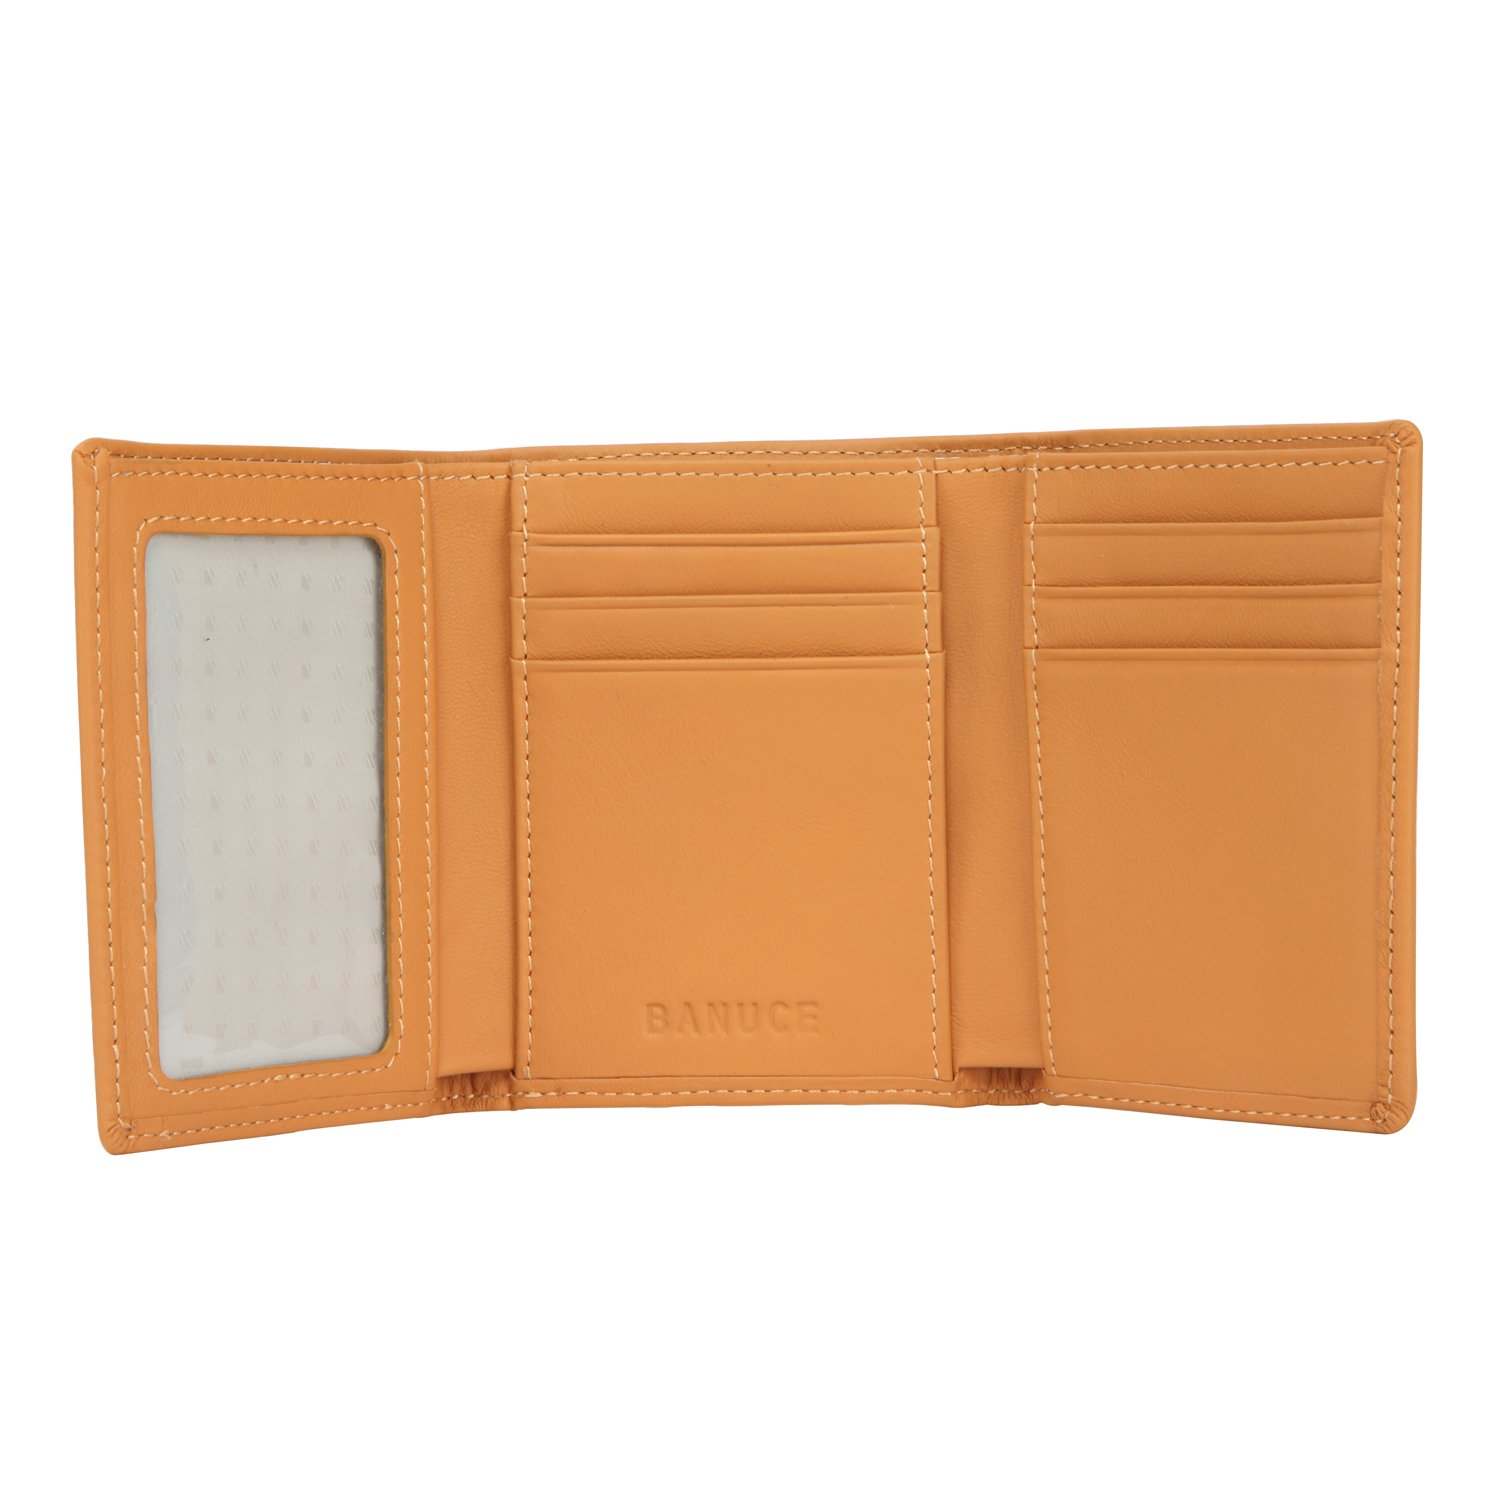 Banuce Women's Full Grains Genuine Leather Slim Small Item Trifold Wallet Color Light Brown by Banuce (Image #7)